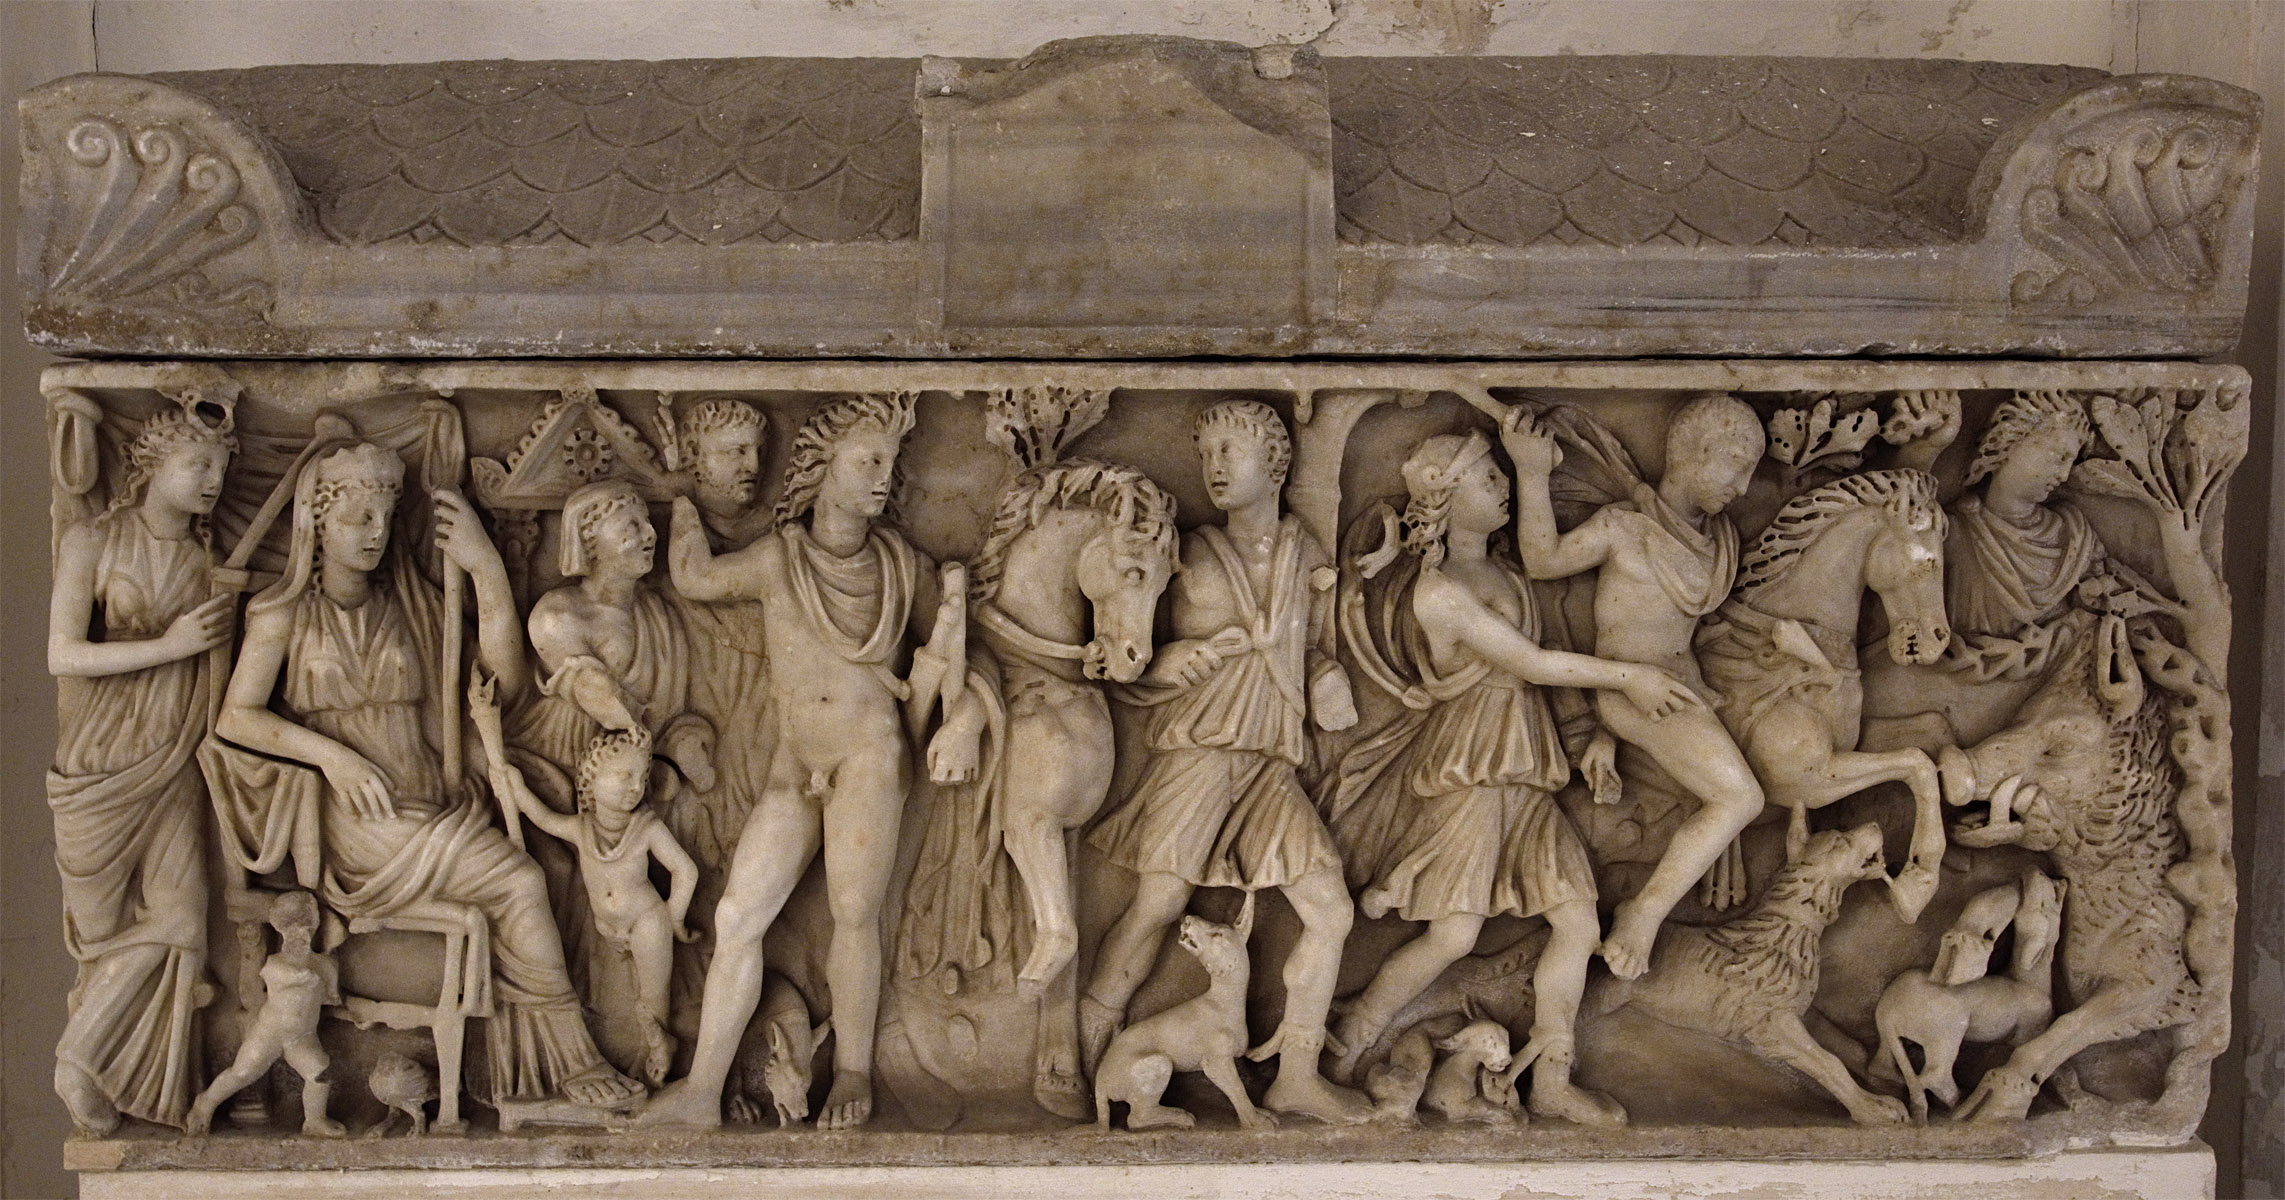 Sarcophagus with scenes of myth of Phaedra and Hippolytus. Marble. 240—250 СЕ. Local production (Campania workshop). Capua, Duomo, crypt